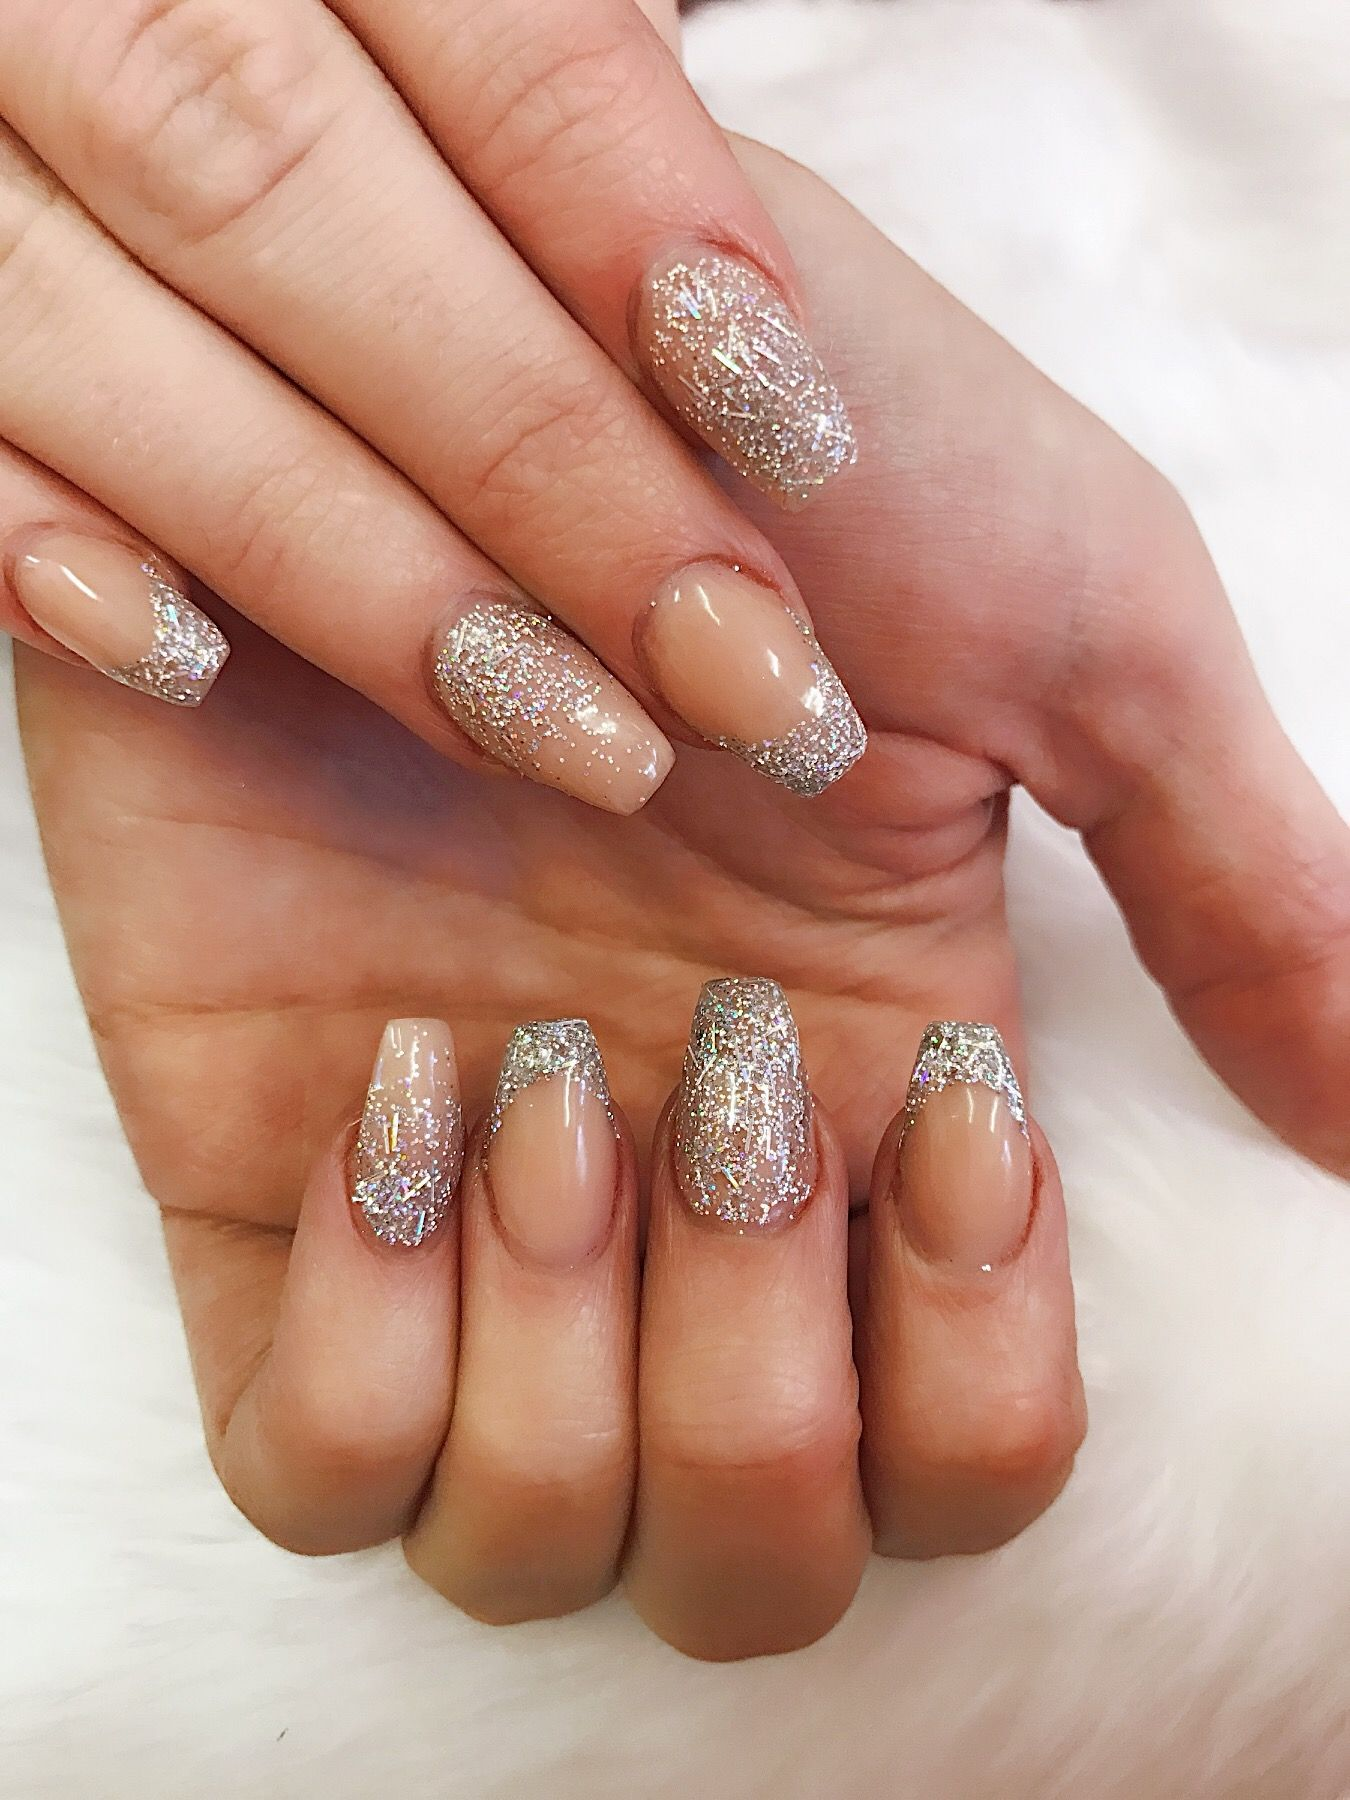 Encapsulated glitter coffin shaped acrylic nails | Nails | Pinterest ...